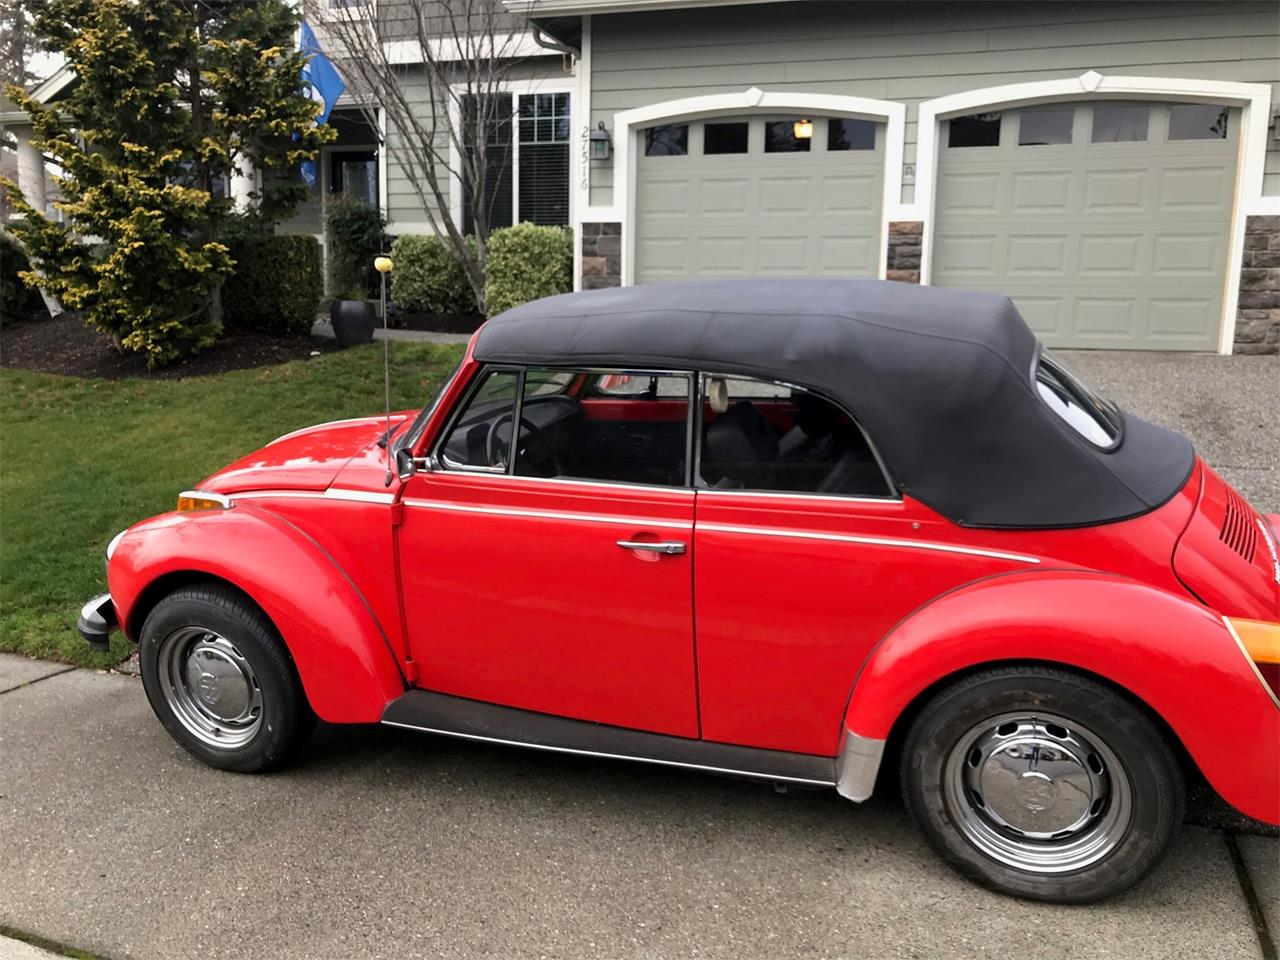 Large Picture of 1979 Volkswagen Super Beetle located in Washington - $14,500.00 - P8SK